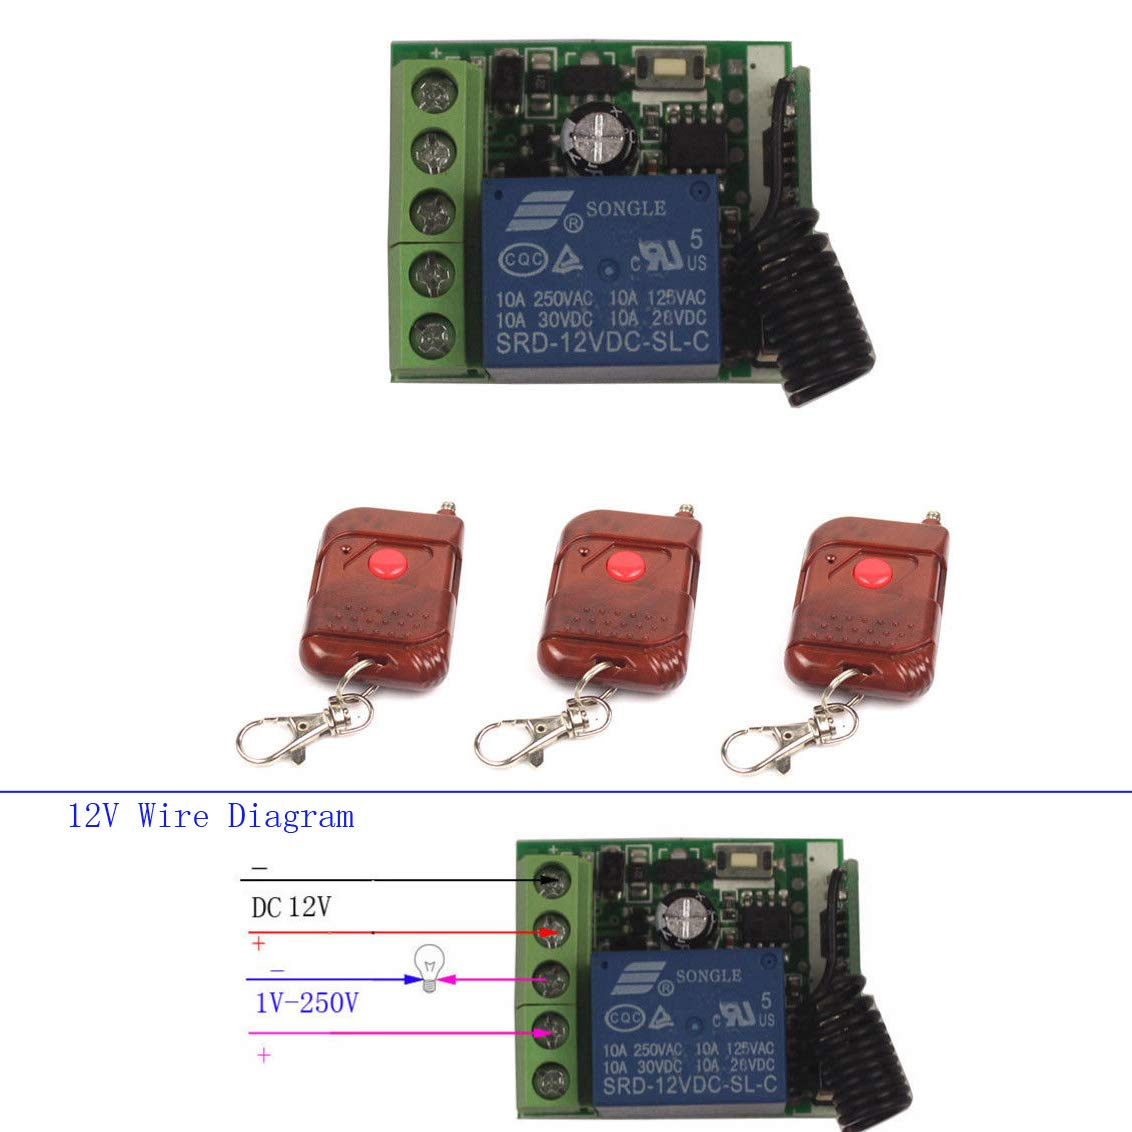 Wireless Relay 12v 10a 1ch Remote Control Switch Momentary Toggle Wiring Diagram Delay Switchchangeable By Youself